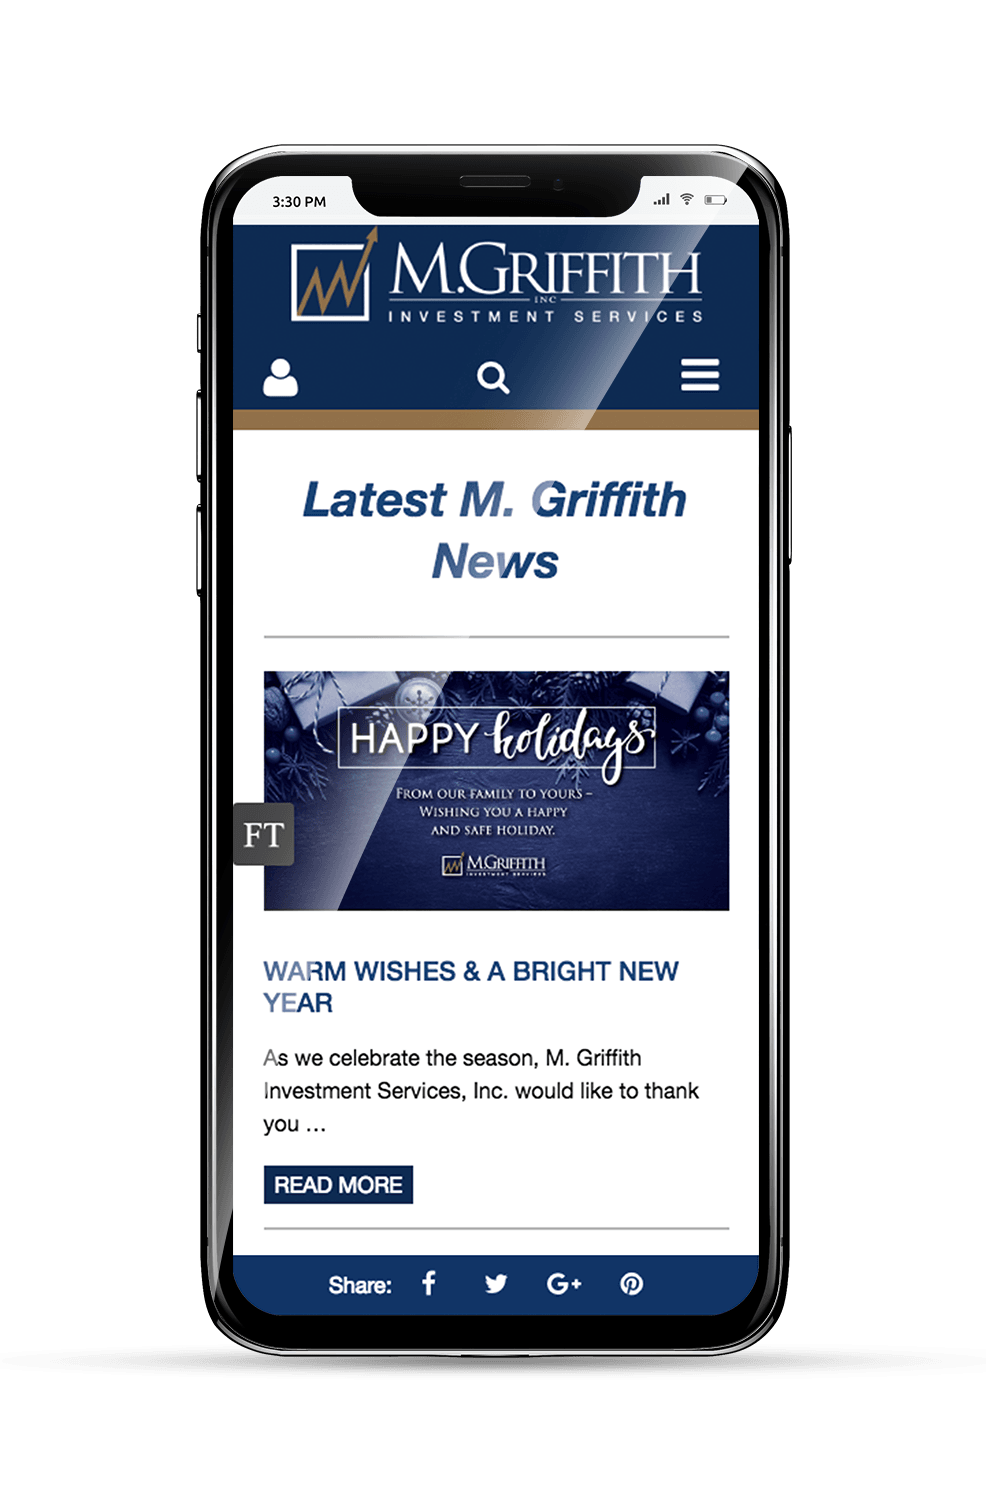 M. Griffith Mobile Website Subpage on an iPhone